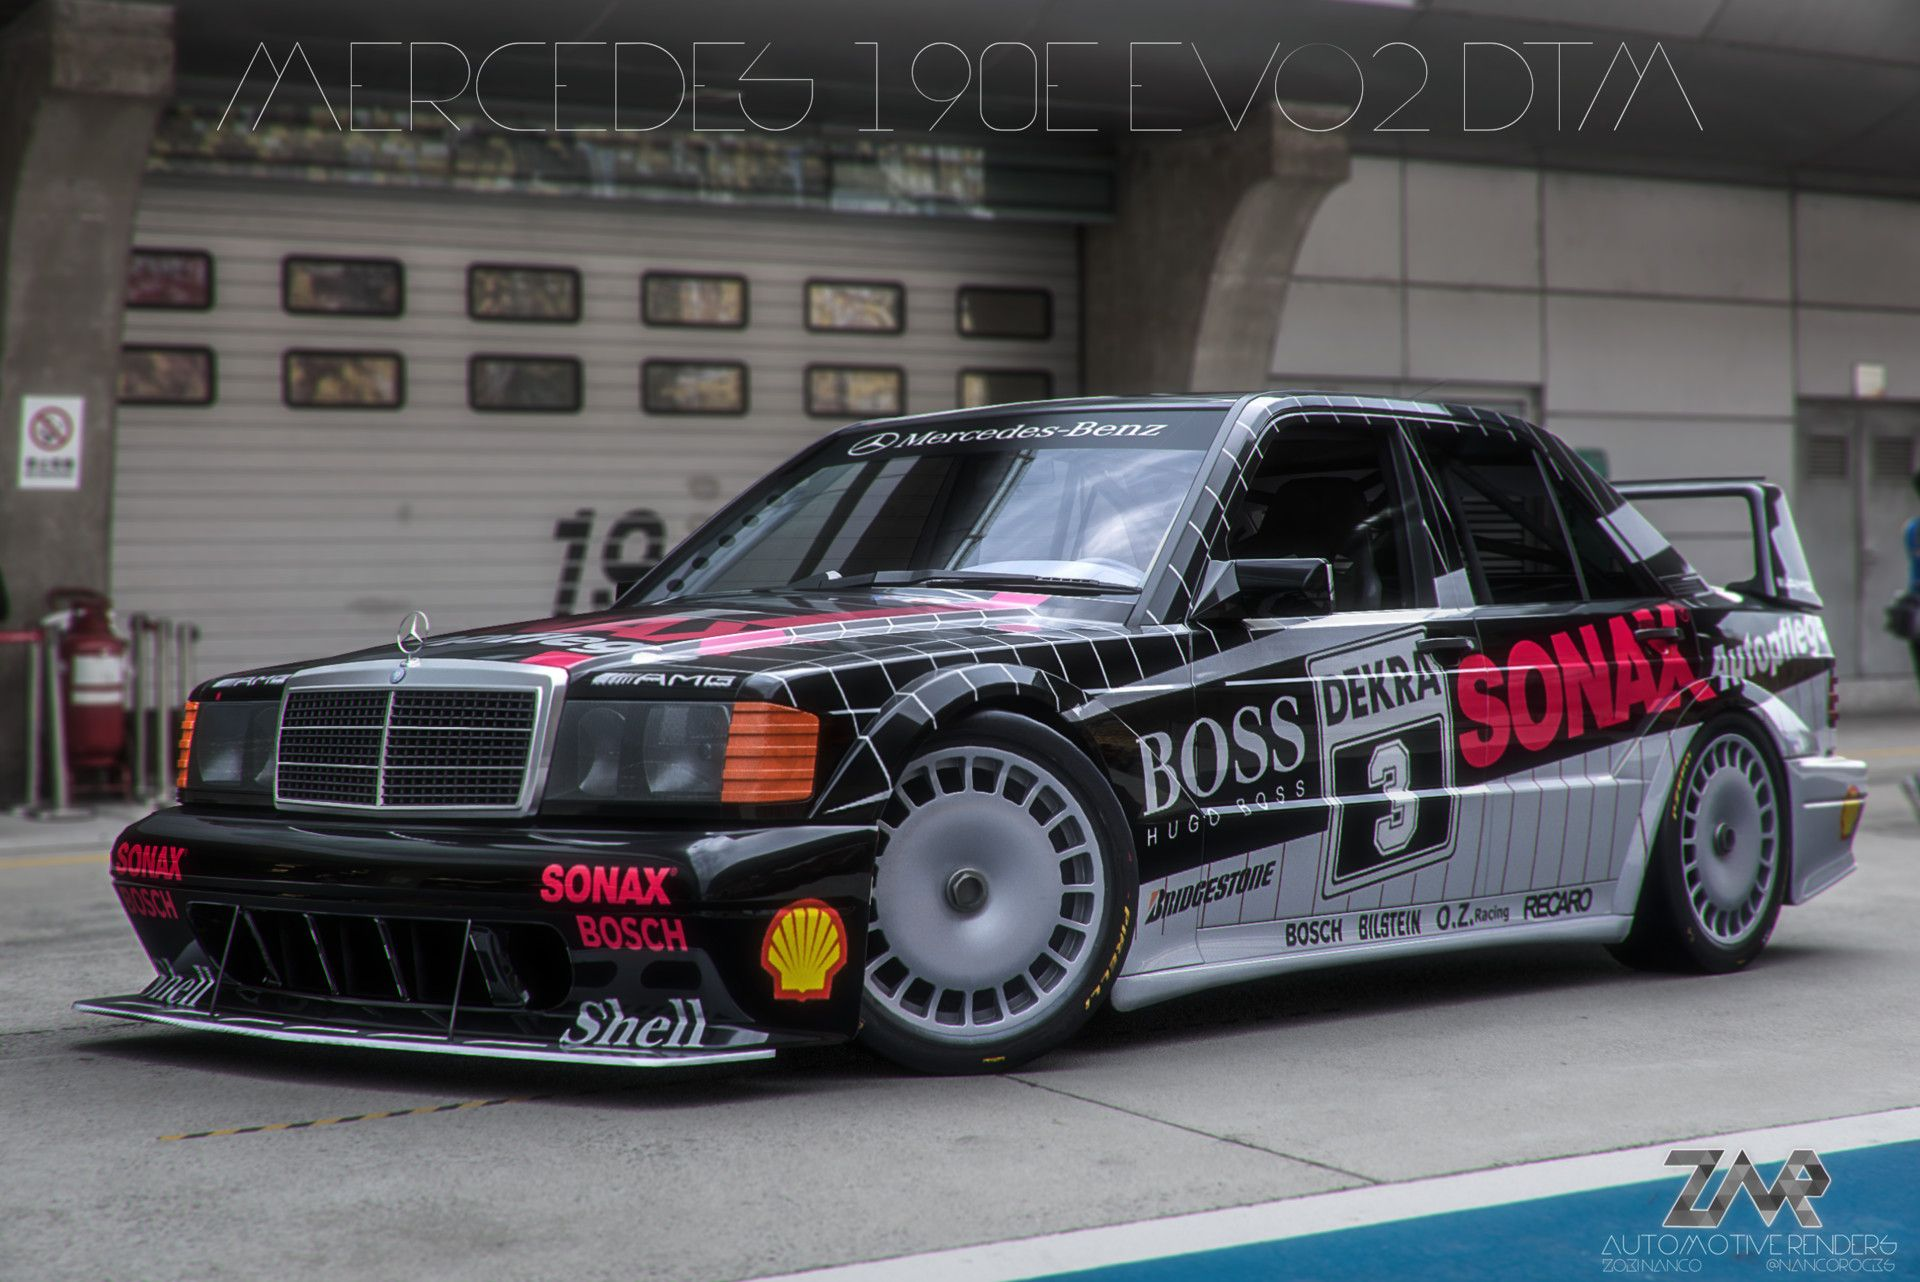 Mercedes 190e Evo Ii Gets Digital Revamp With New Amg Parts With